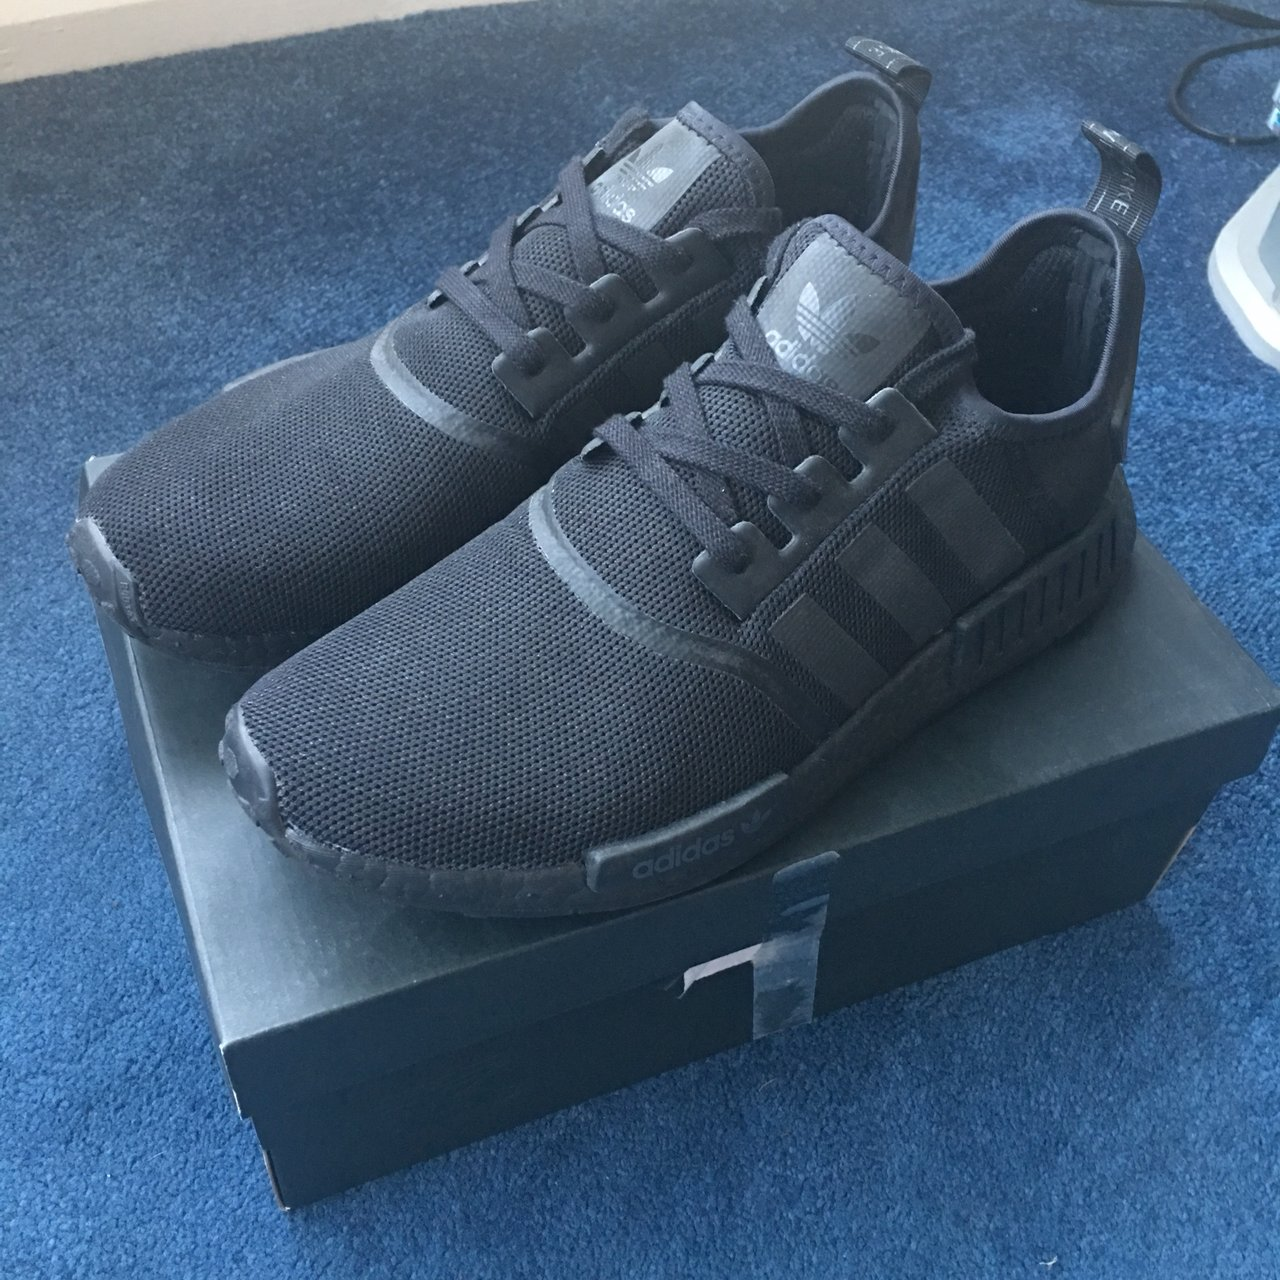 2a8f6294a423 Adidas NMD R1 triple black 2017 release Worn but good to - Depop